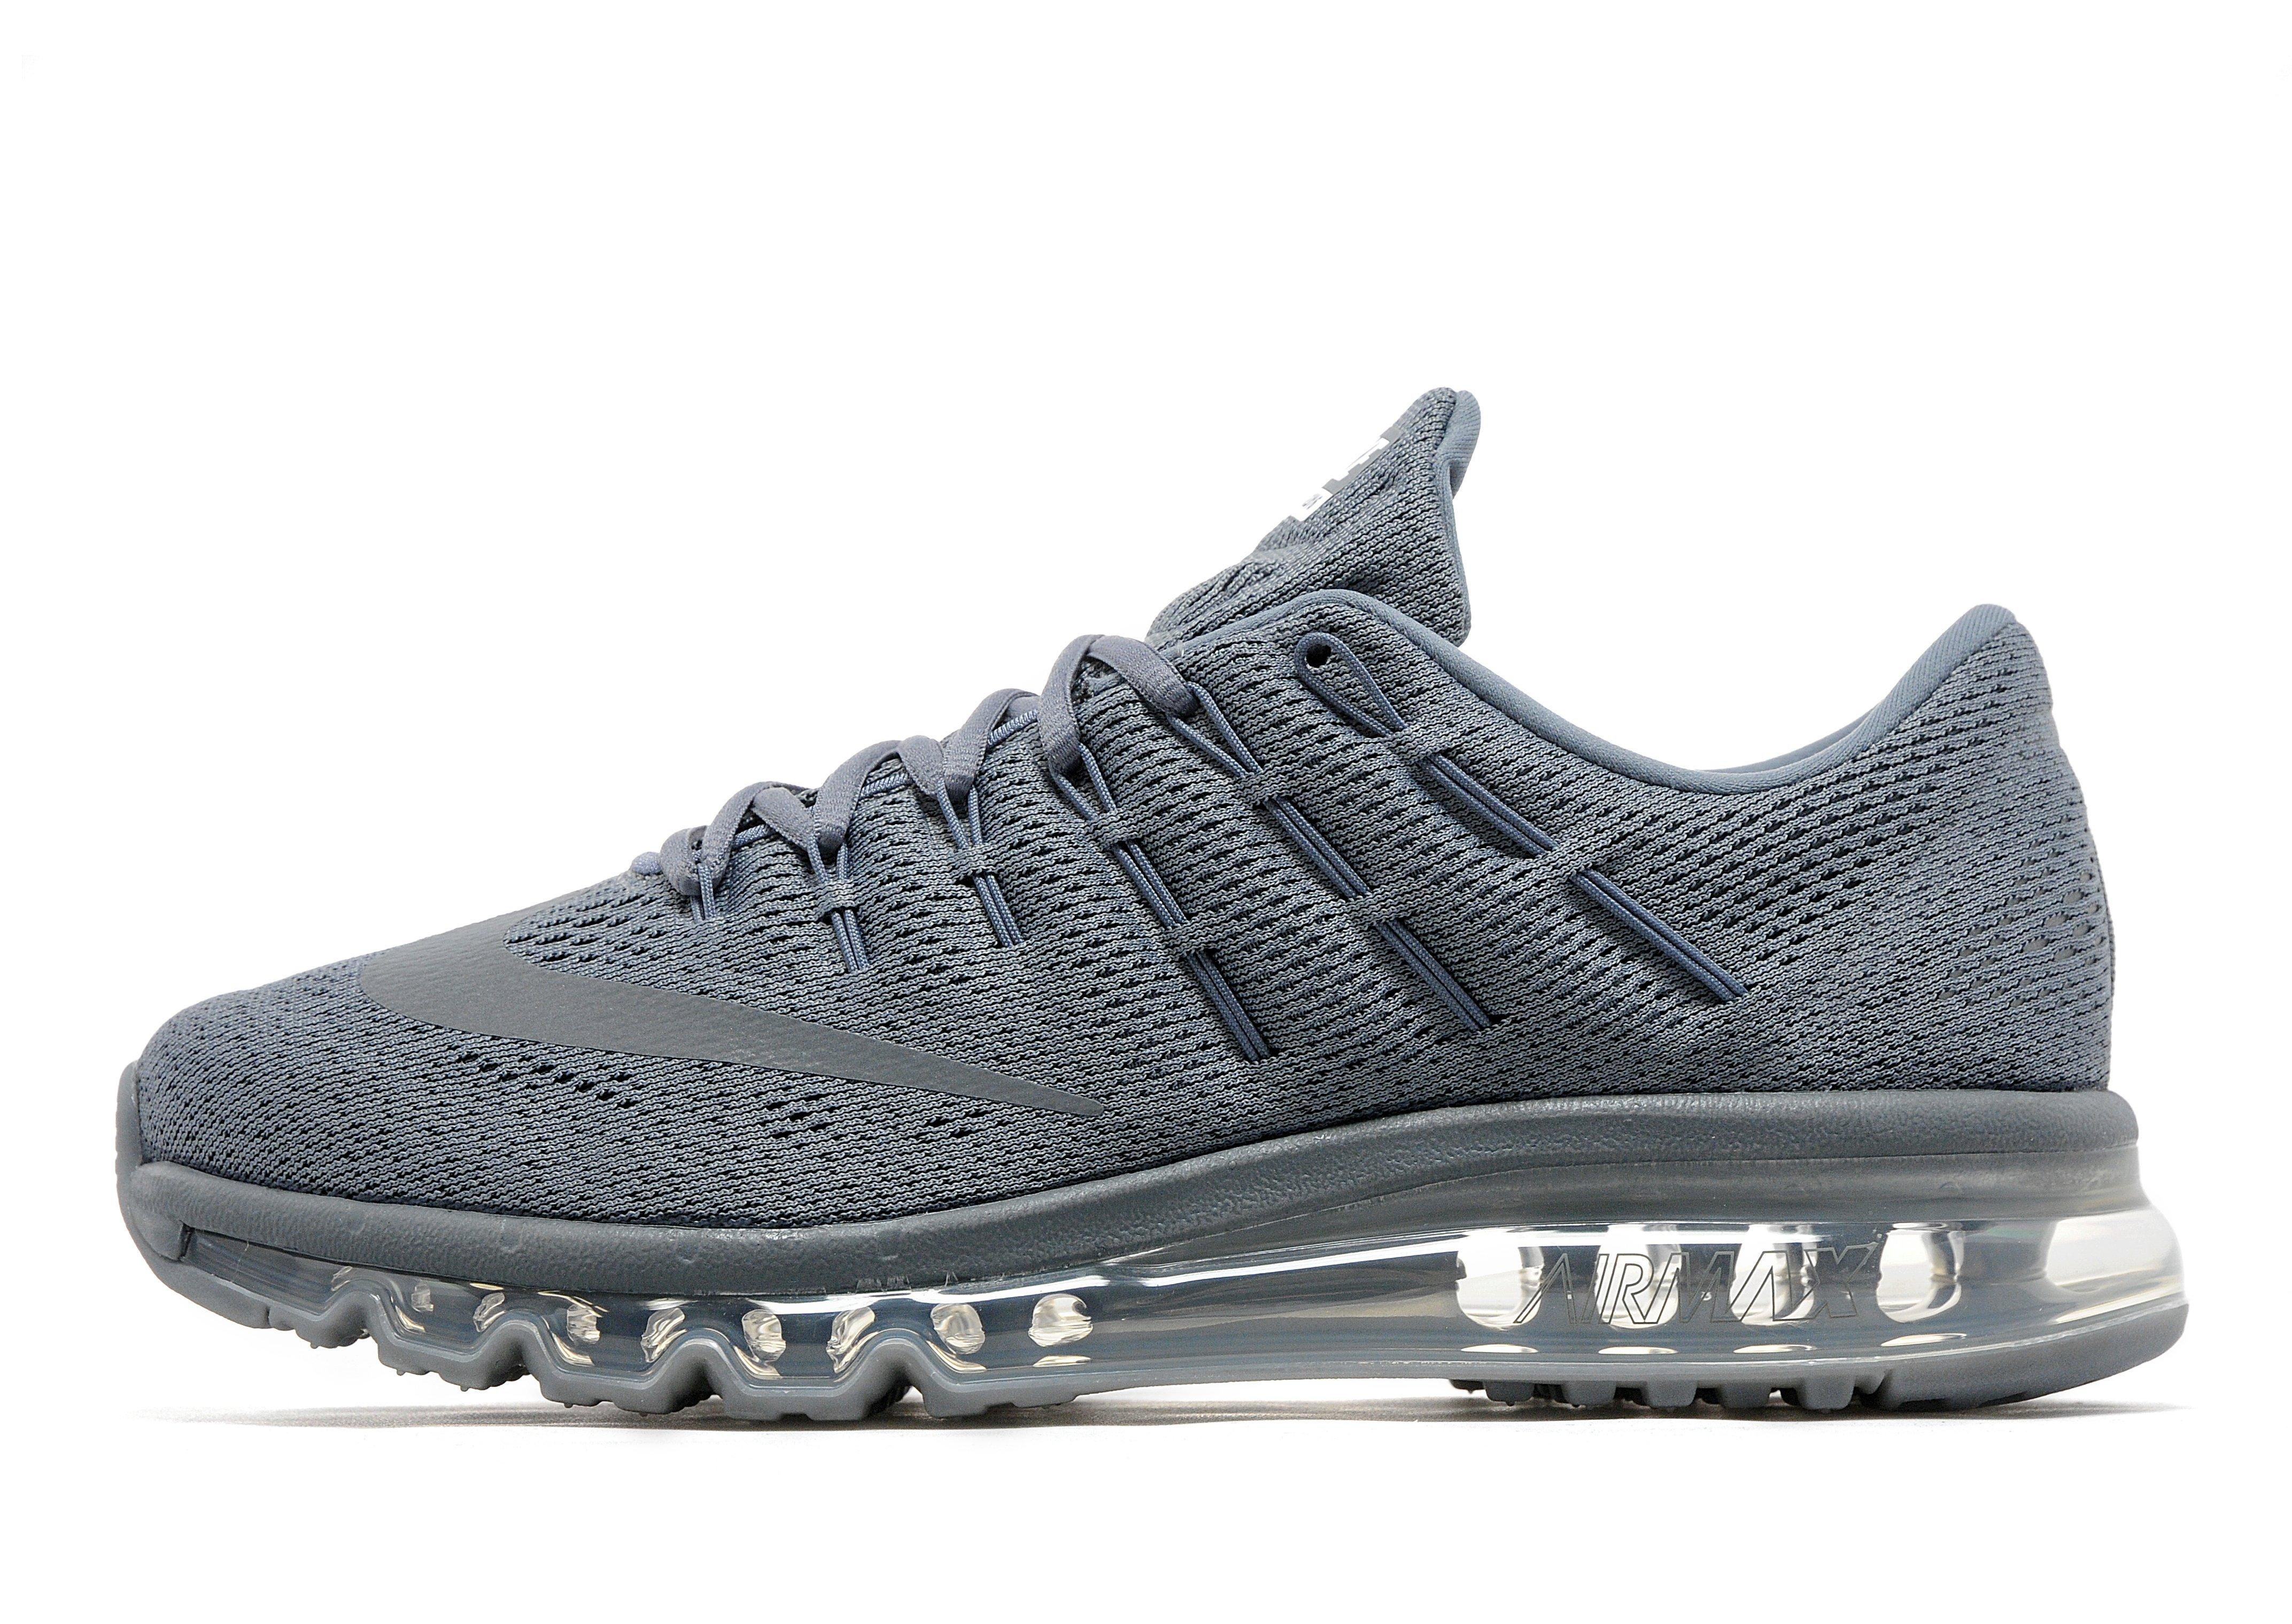 NIKE AIR MAX 2016 GS PRINT, Newest Shoes Review